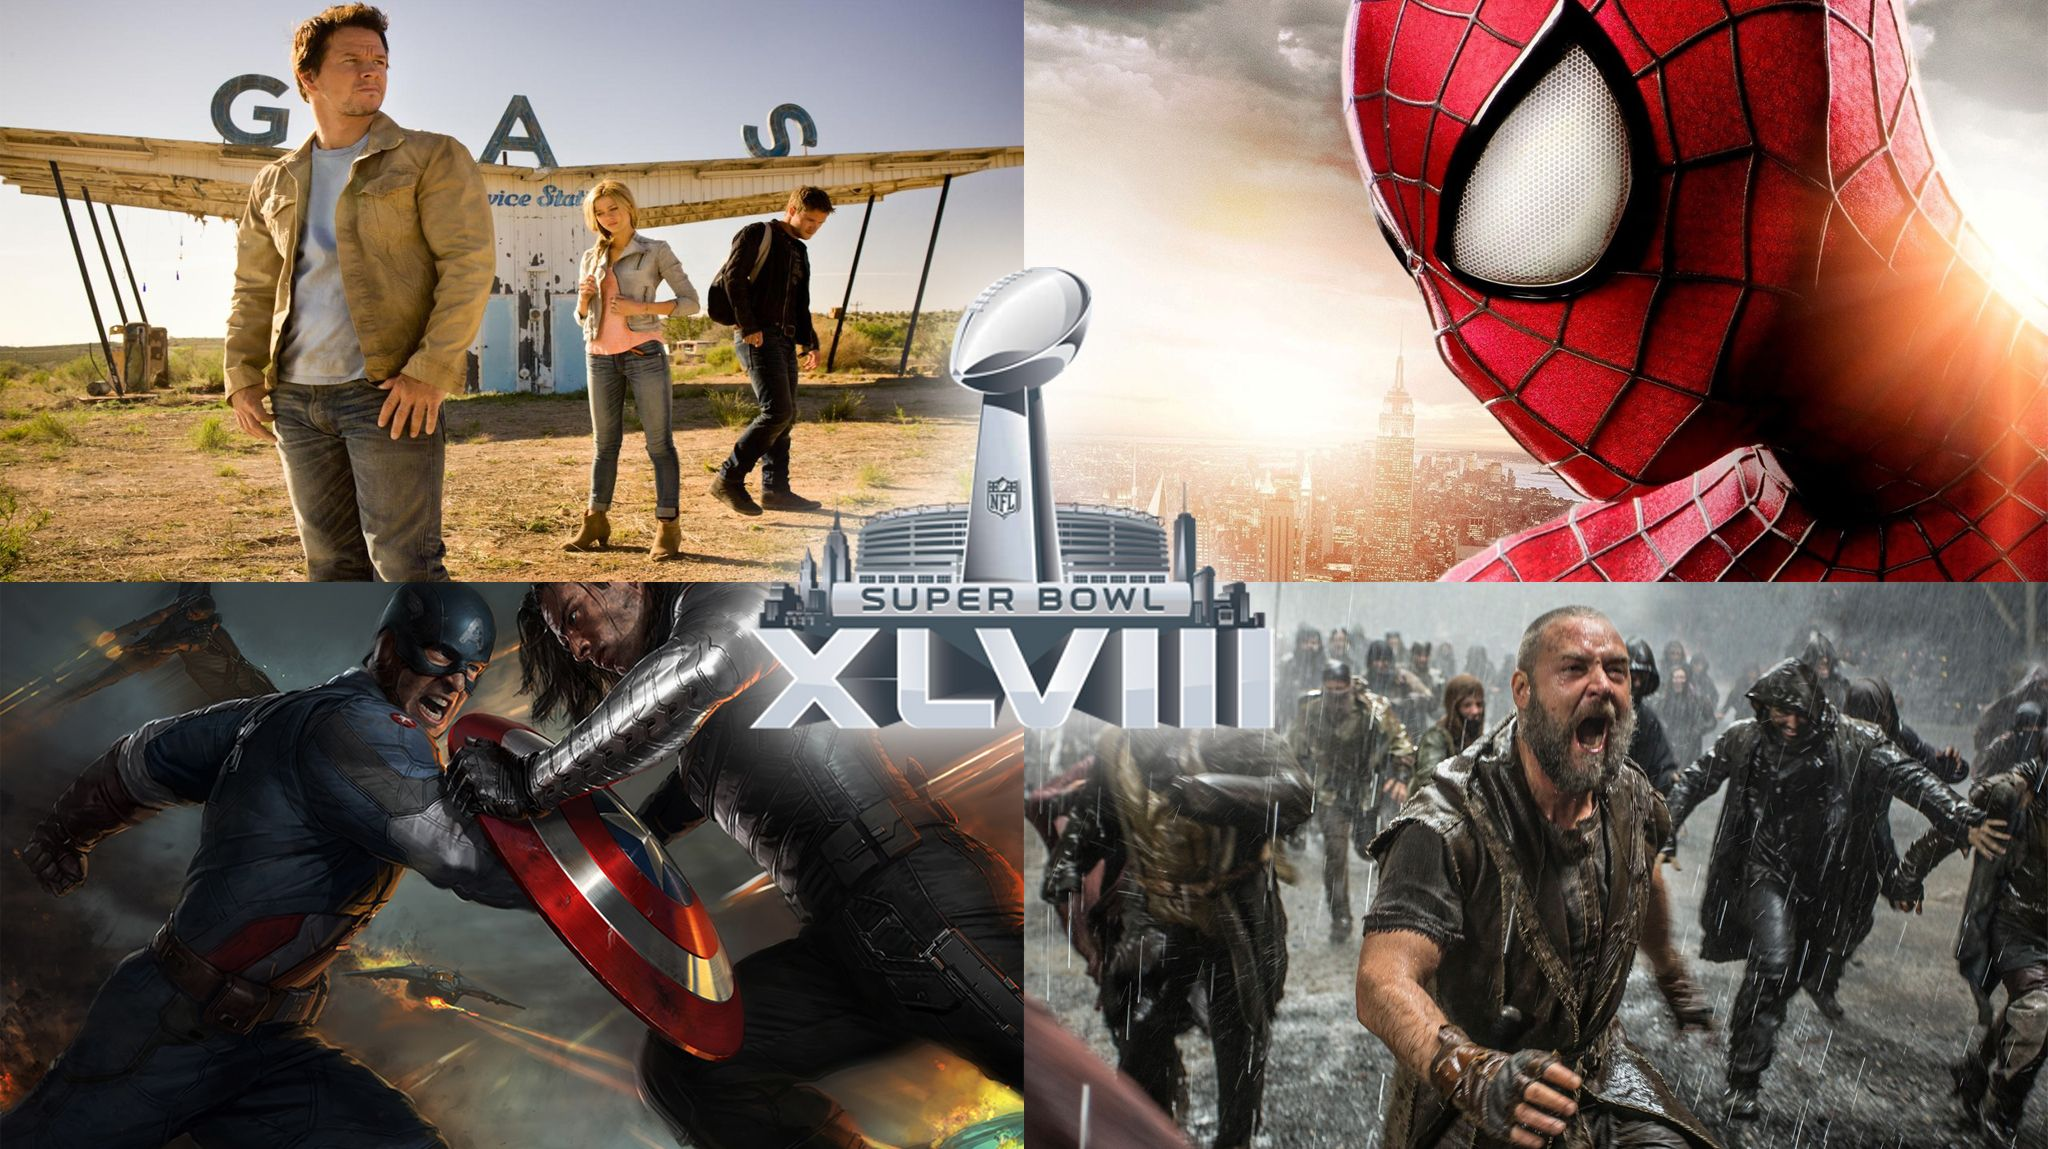 Watch the film trailers from this past Sunday's Super Bowl